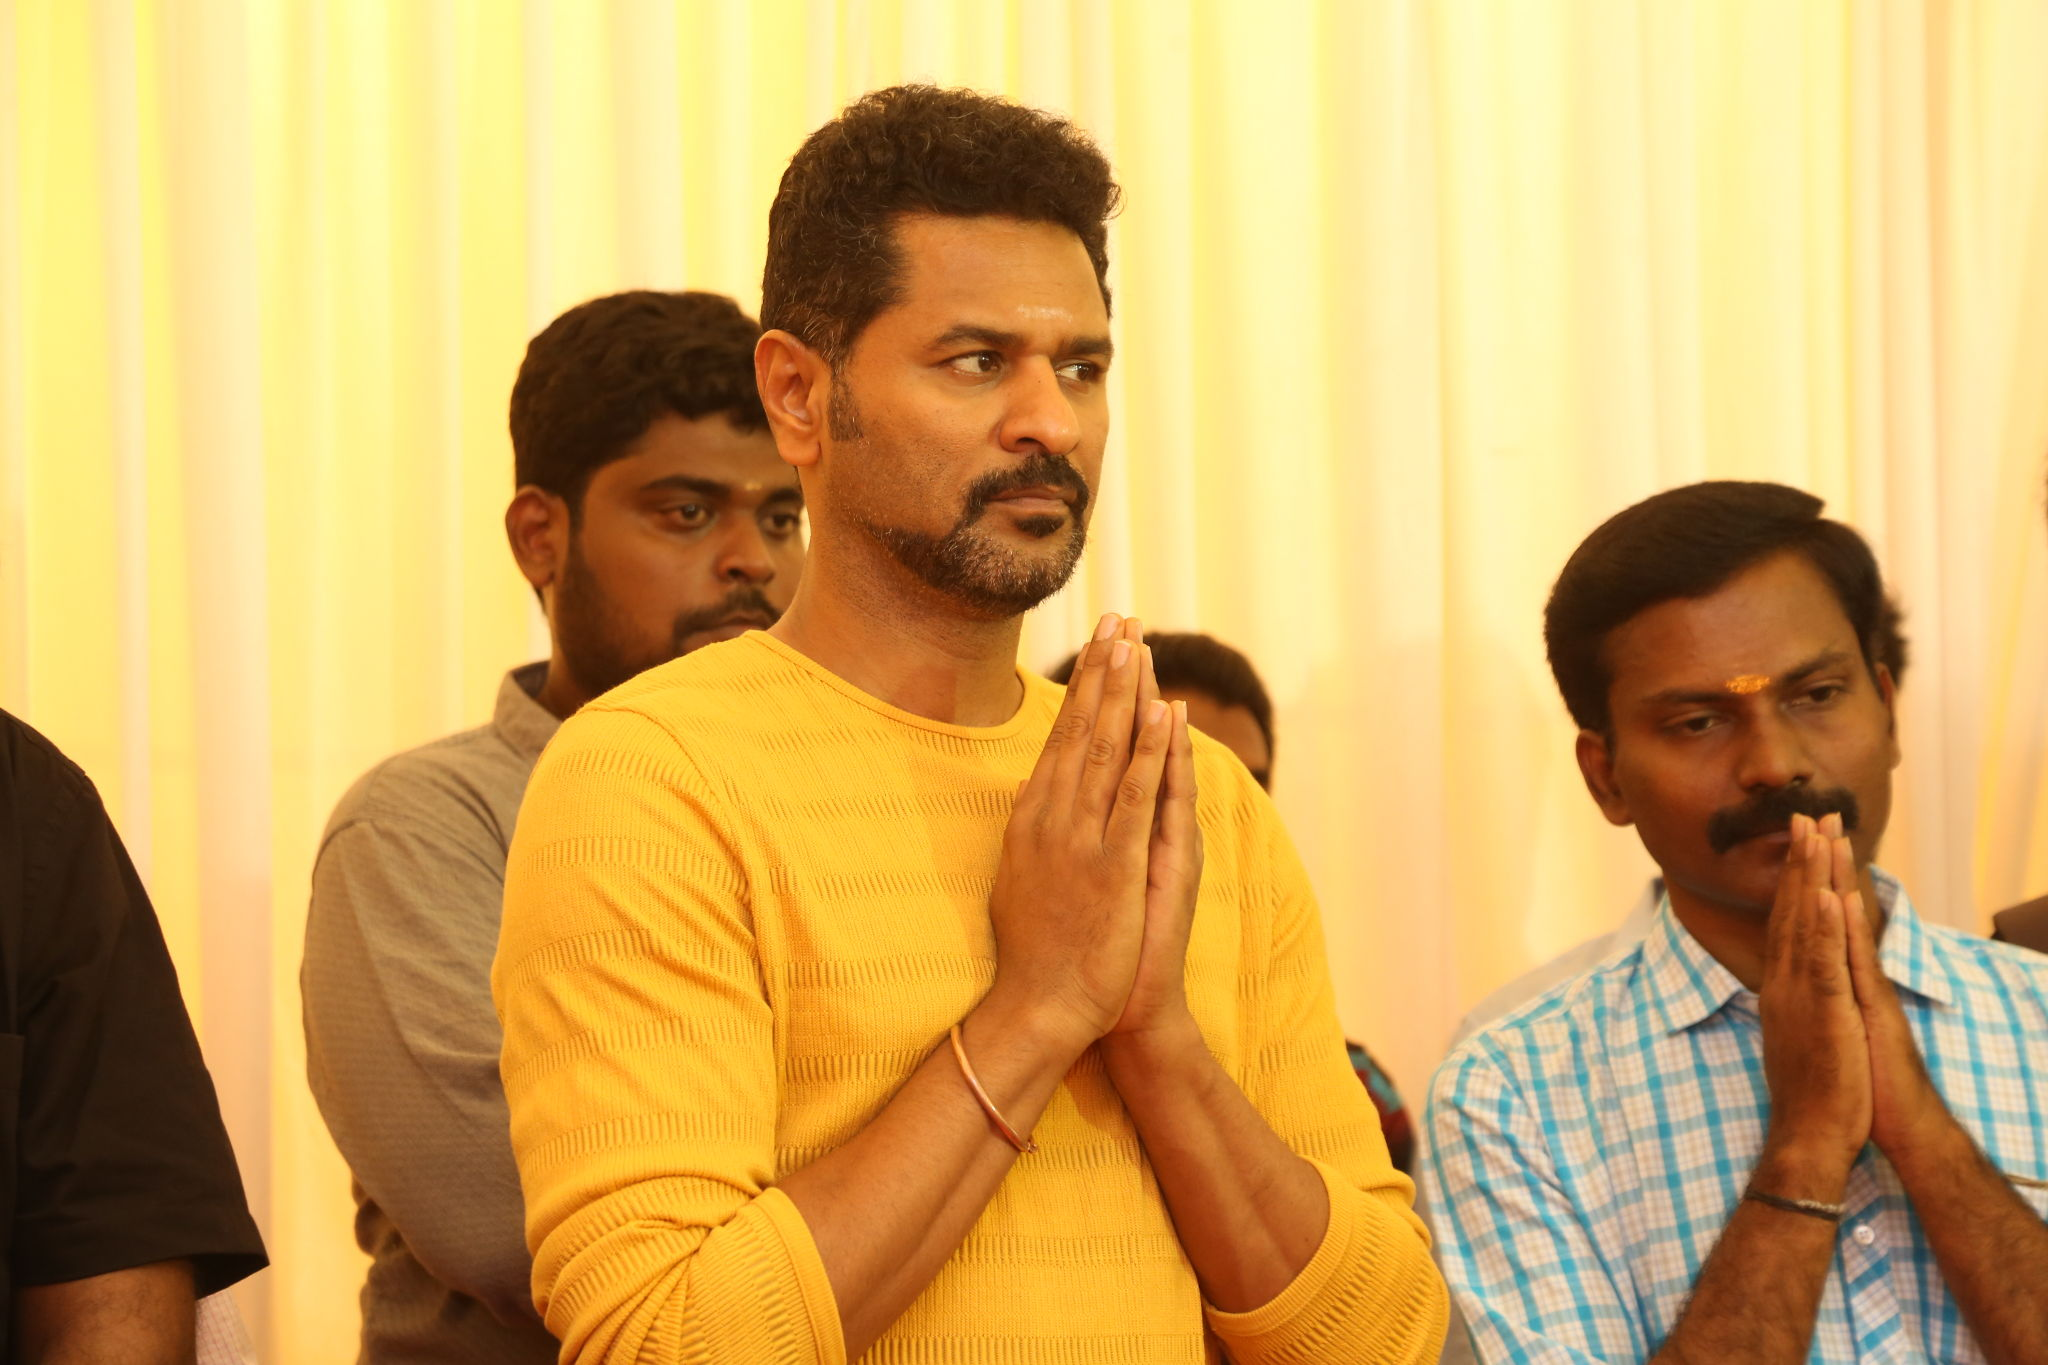 Prabhu Deva's next titled THEAL (Scorpion), to be produced by Gnanavel Raja